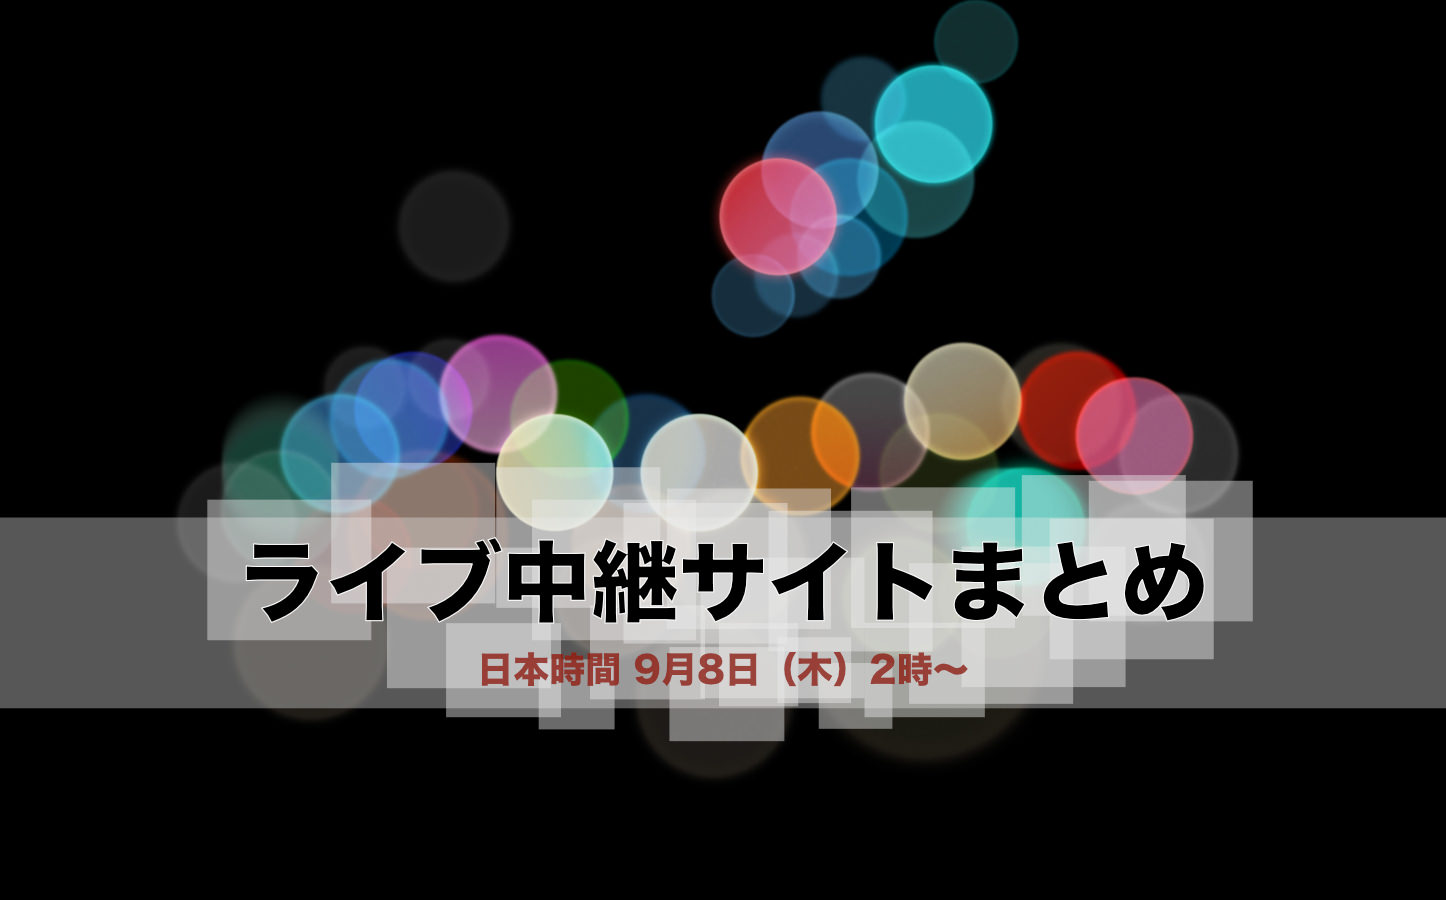 Iphone 7 special event live